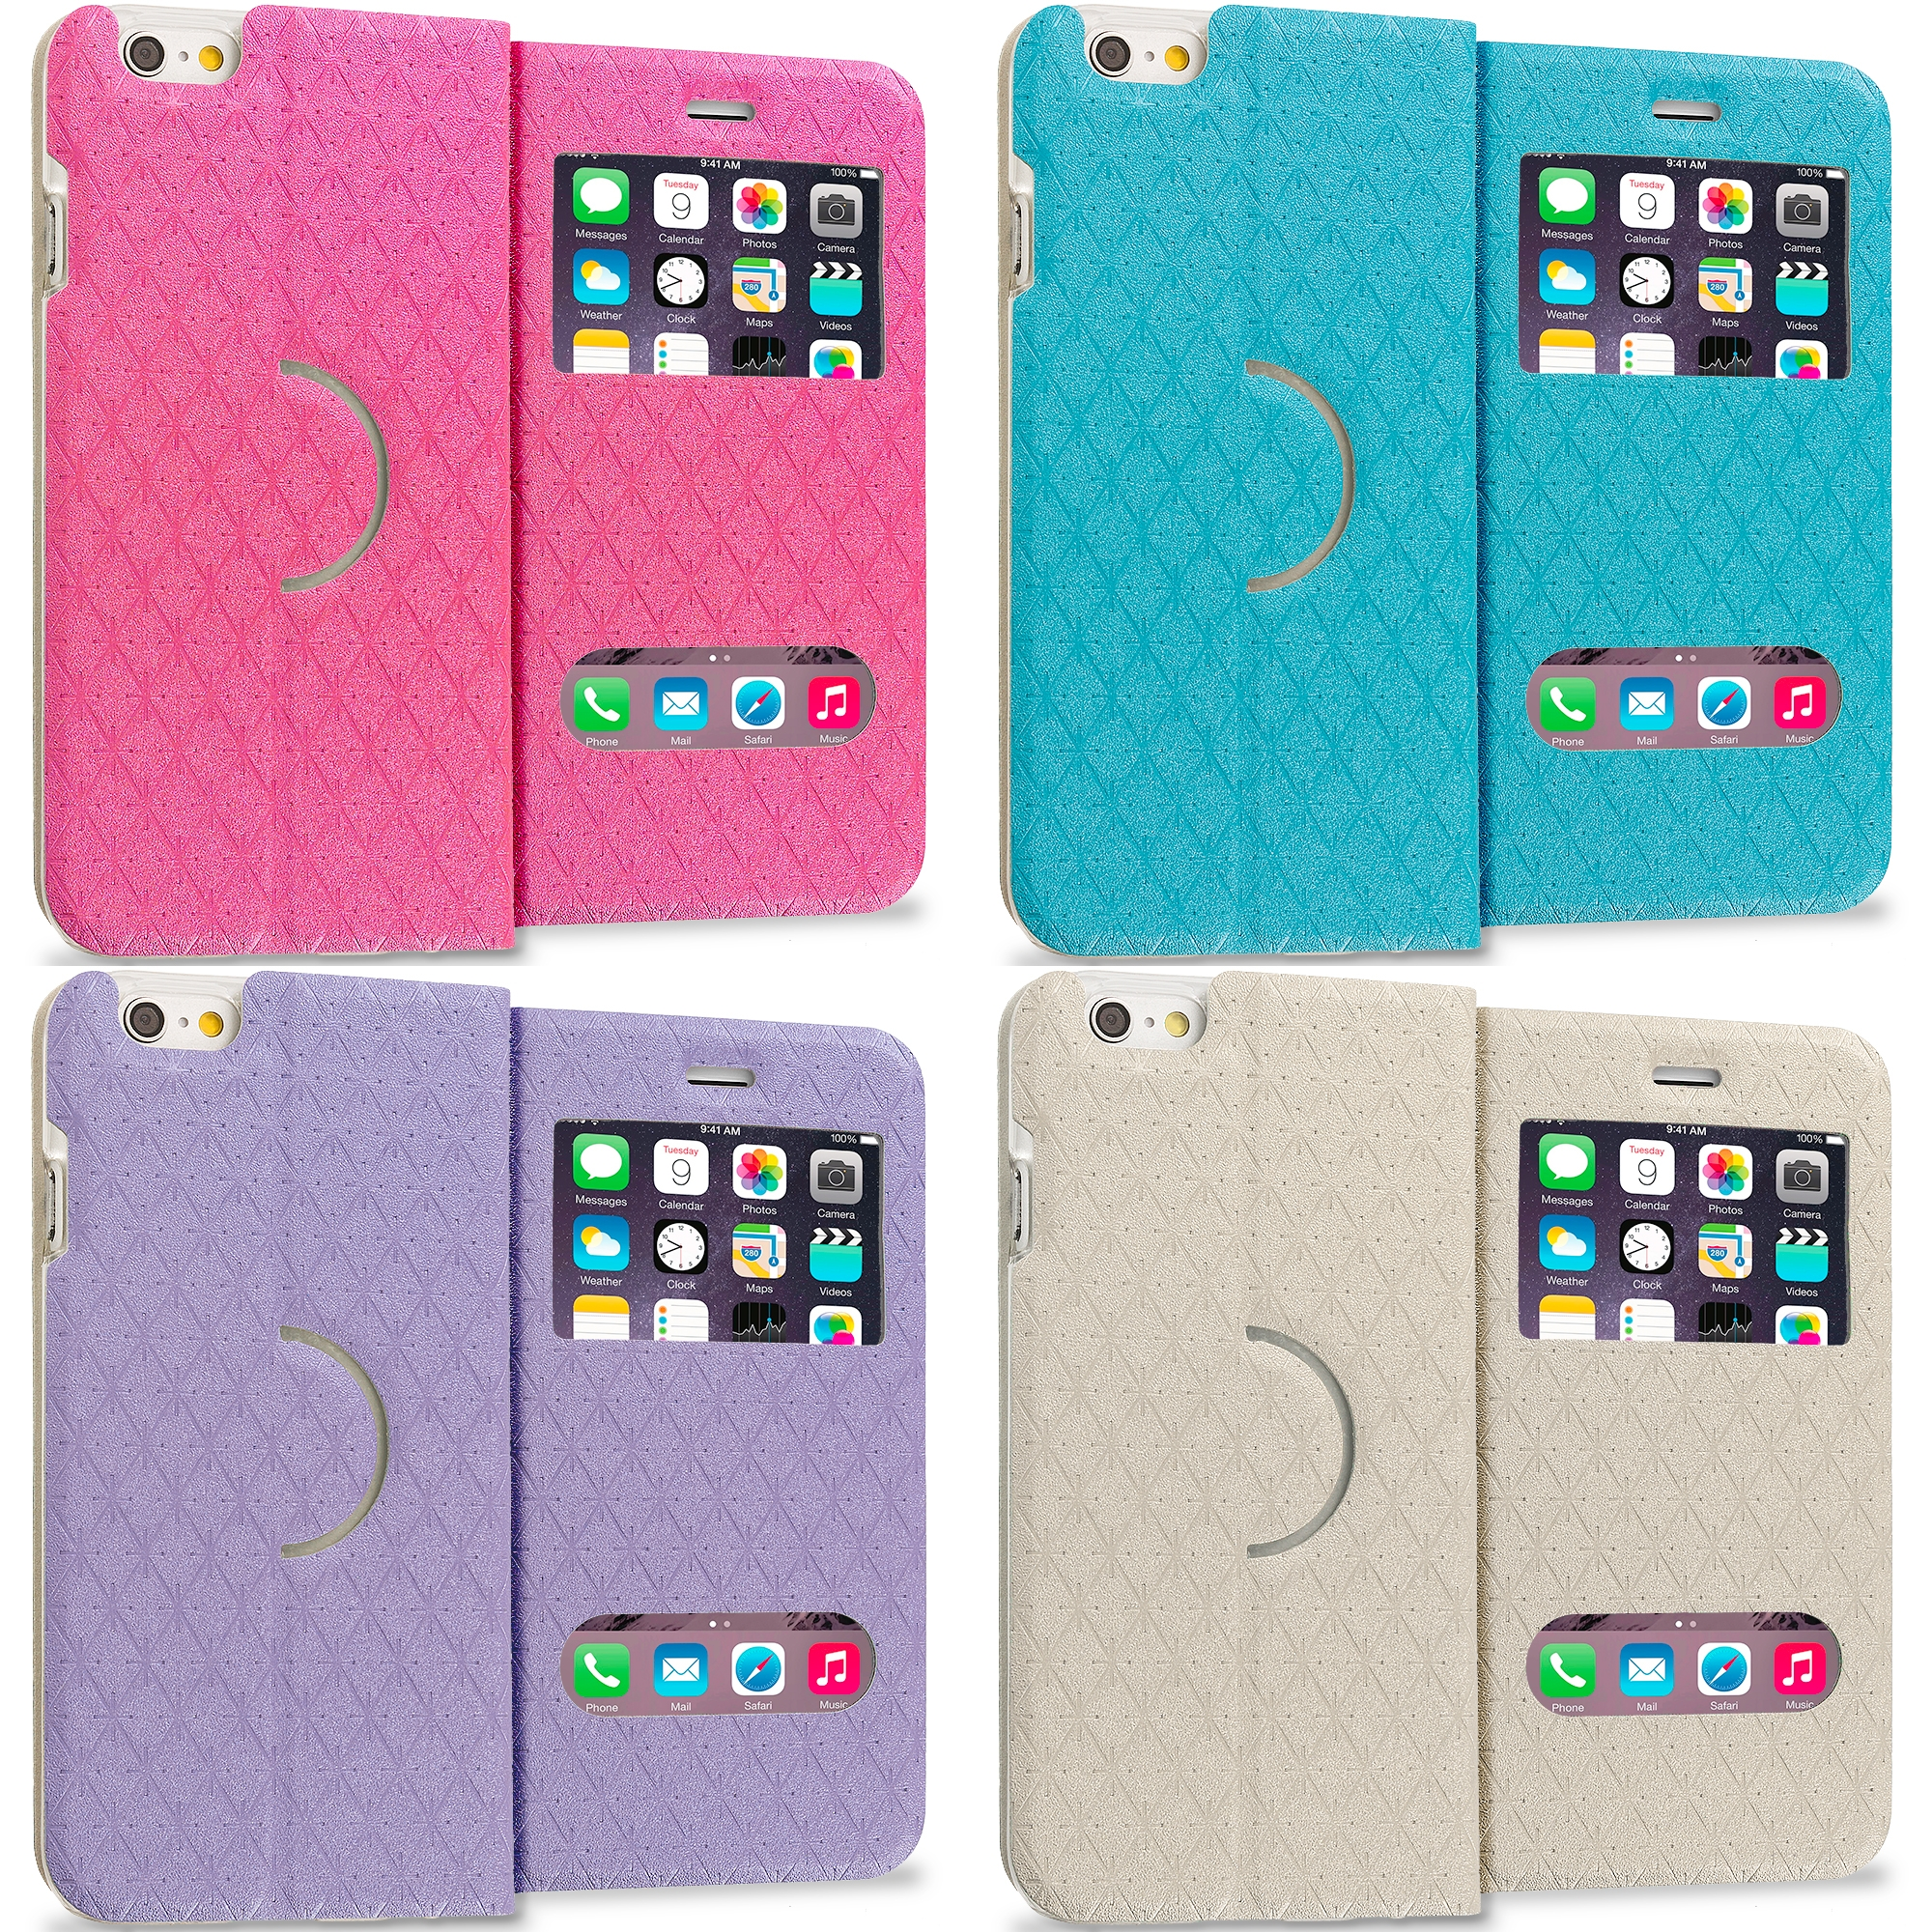 Apple iPhone 6 6S (4.7) 4 in 1 Combo Bundle Pack - Slim Hard Wallet Flip Case Cover With Double Window